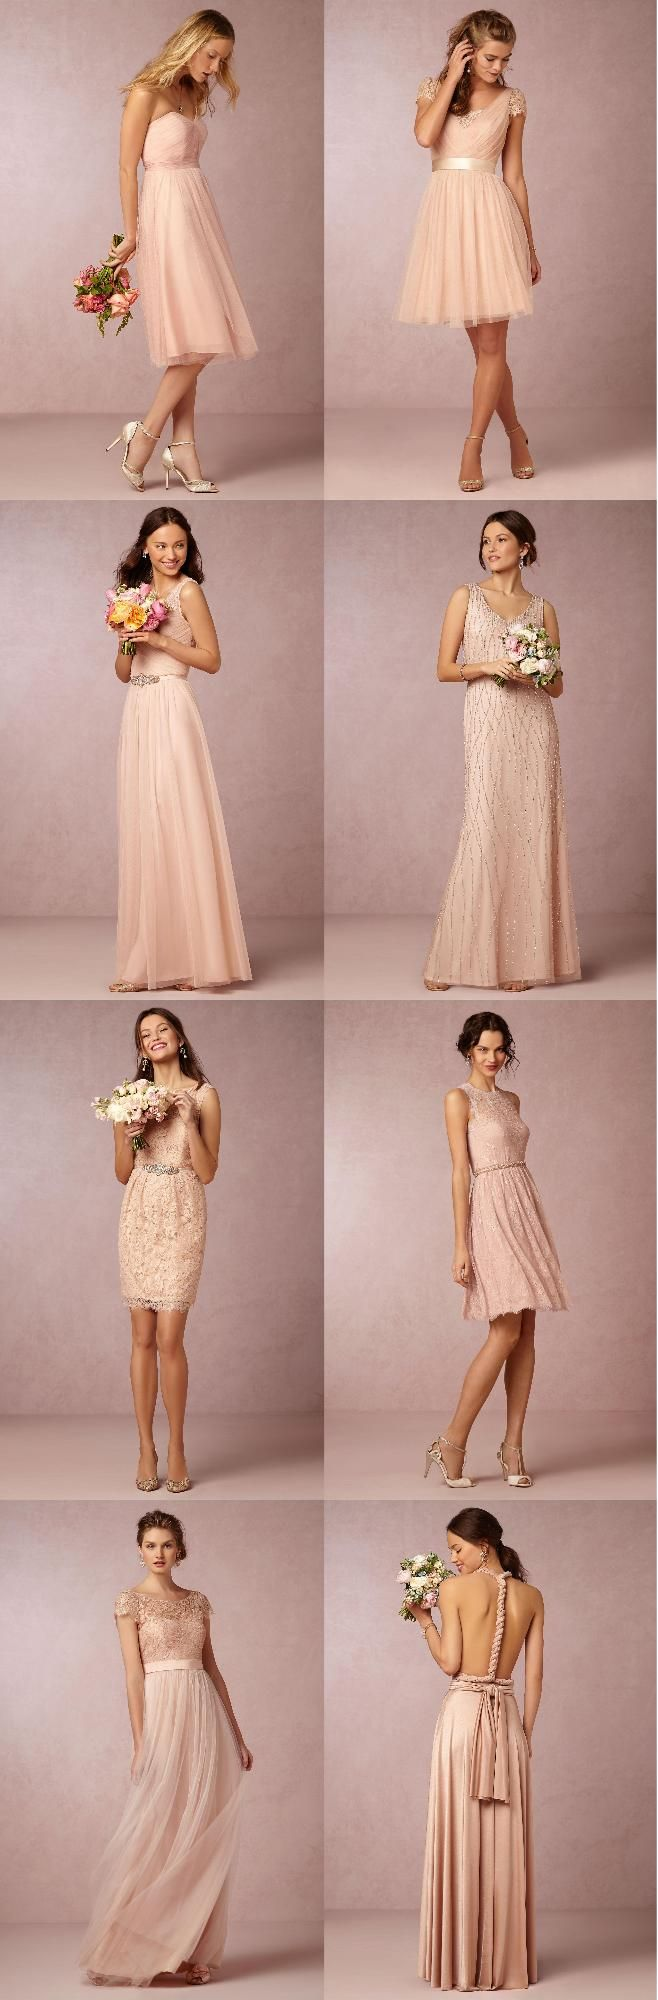 Collection of Light Pink Bridesmaids Dresses from BHLDN